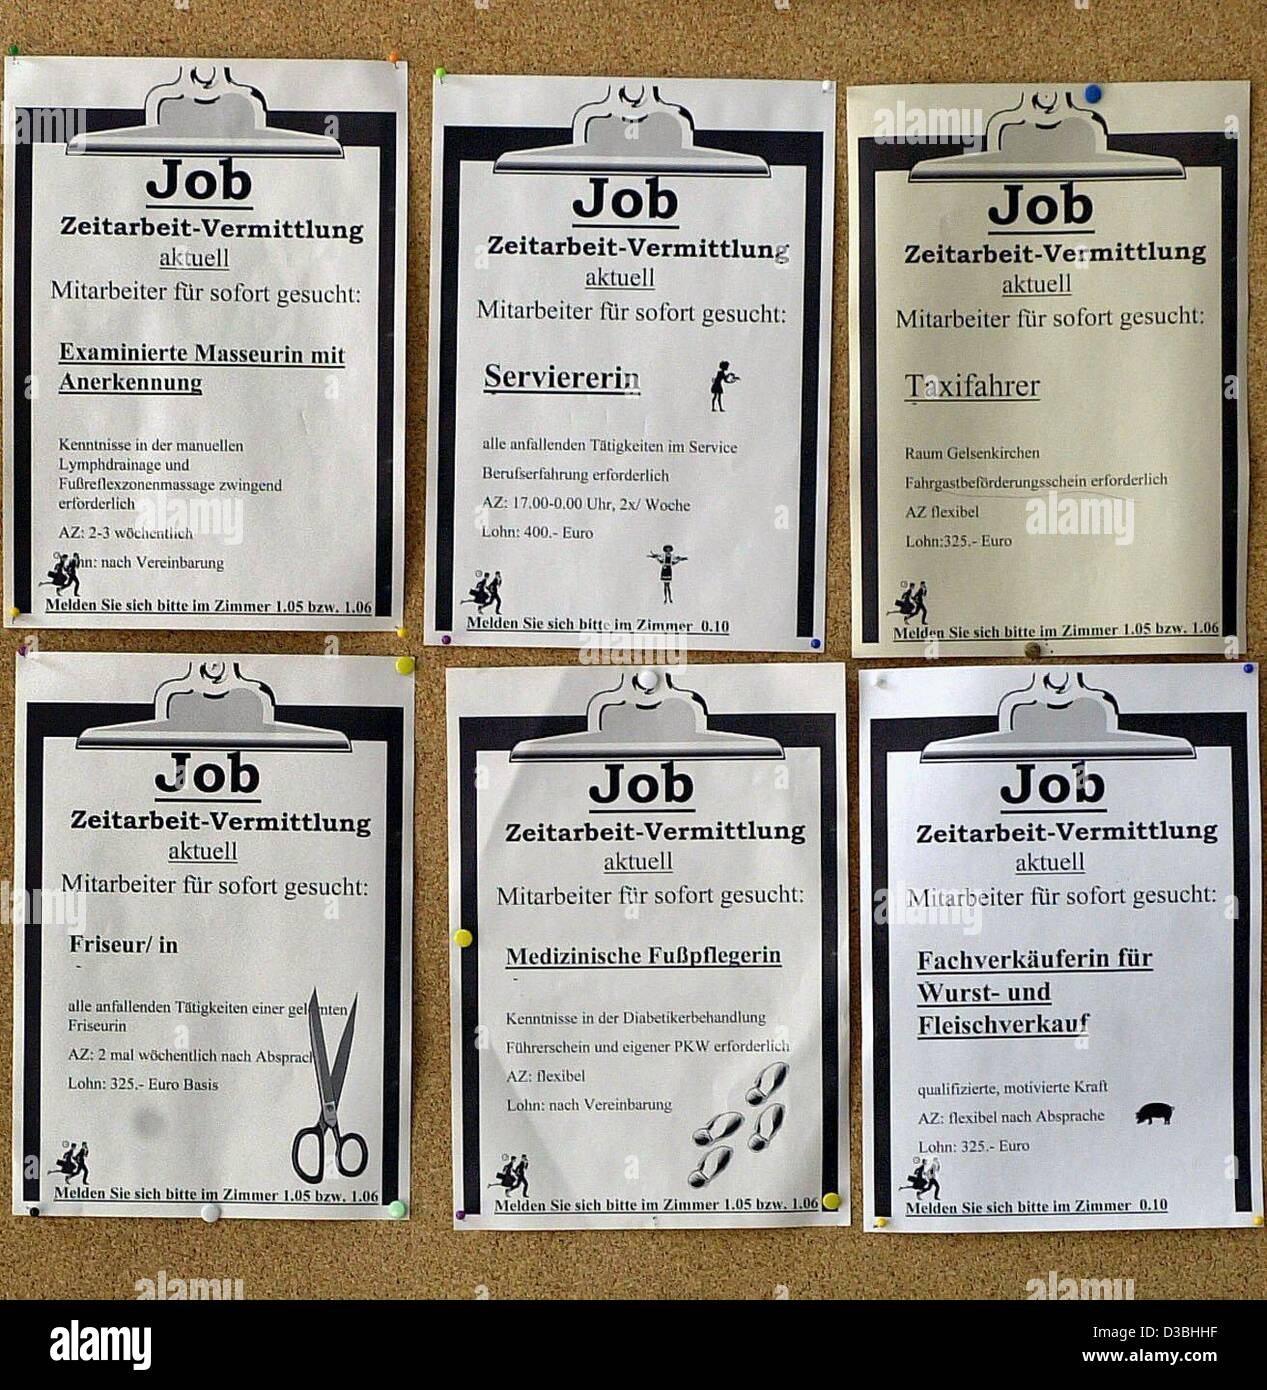 dpa a notice board for vacancies advertises temping jobs in the local branch of the federal employment office gelsenkirchen germany 2 june 2003